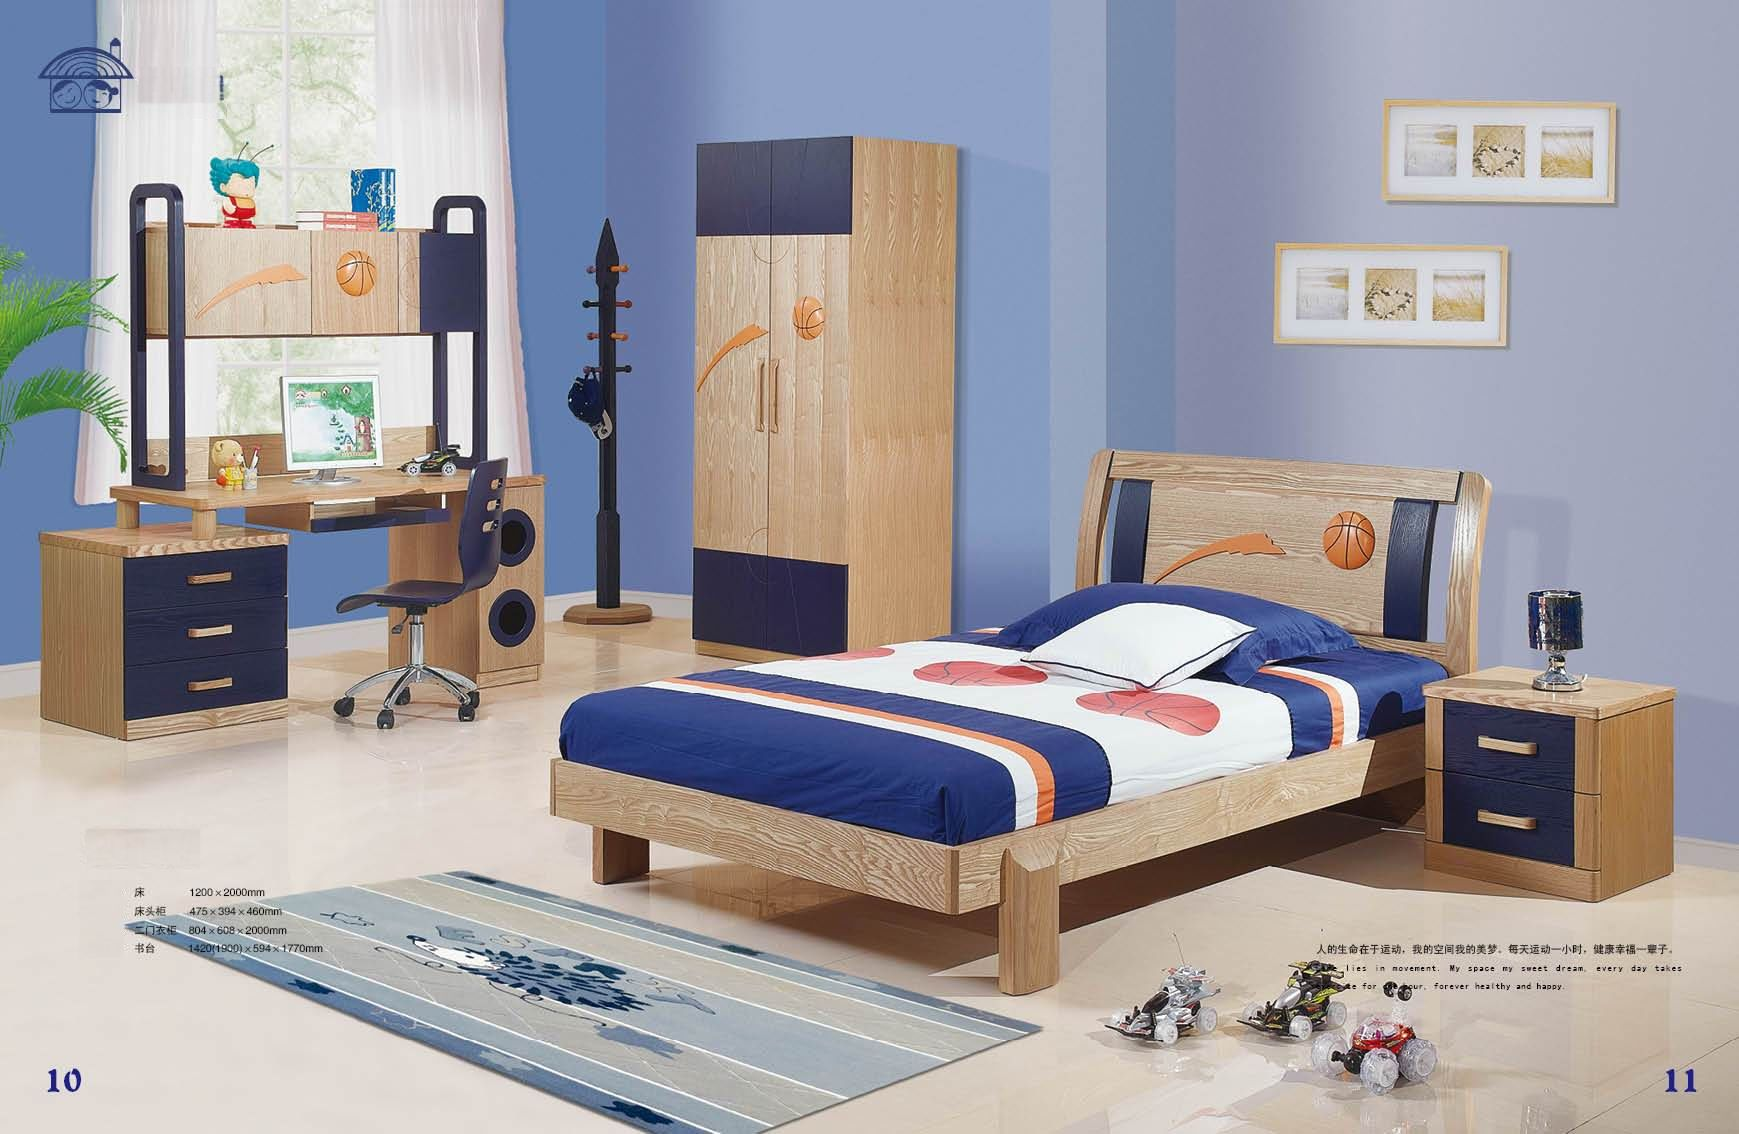 Youth bedroom furniture kids bedroom set jkd 20120 for Children bedroom furniture